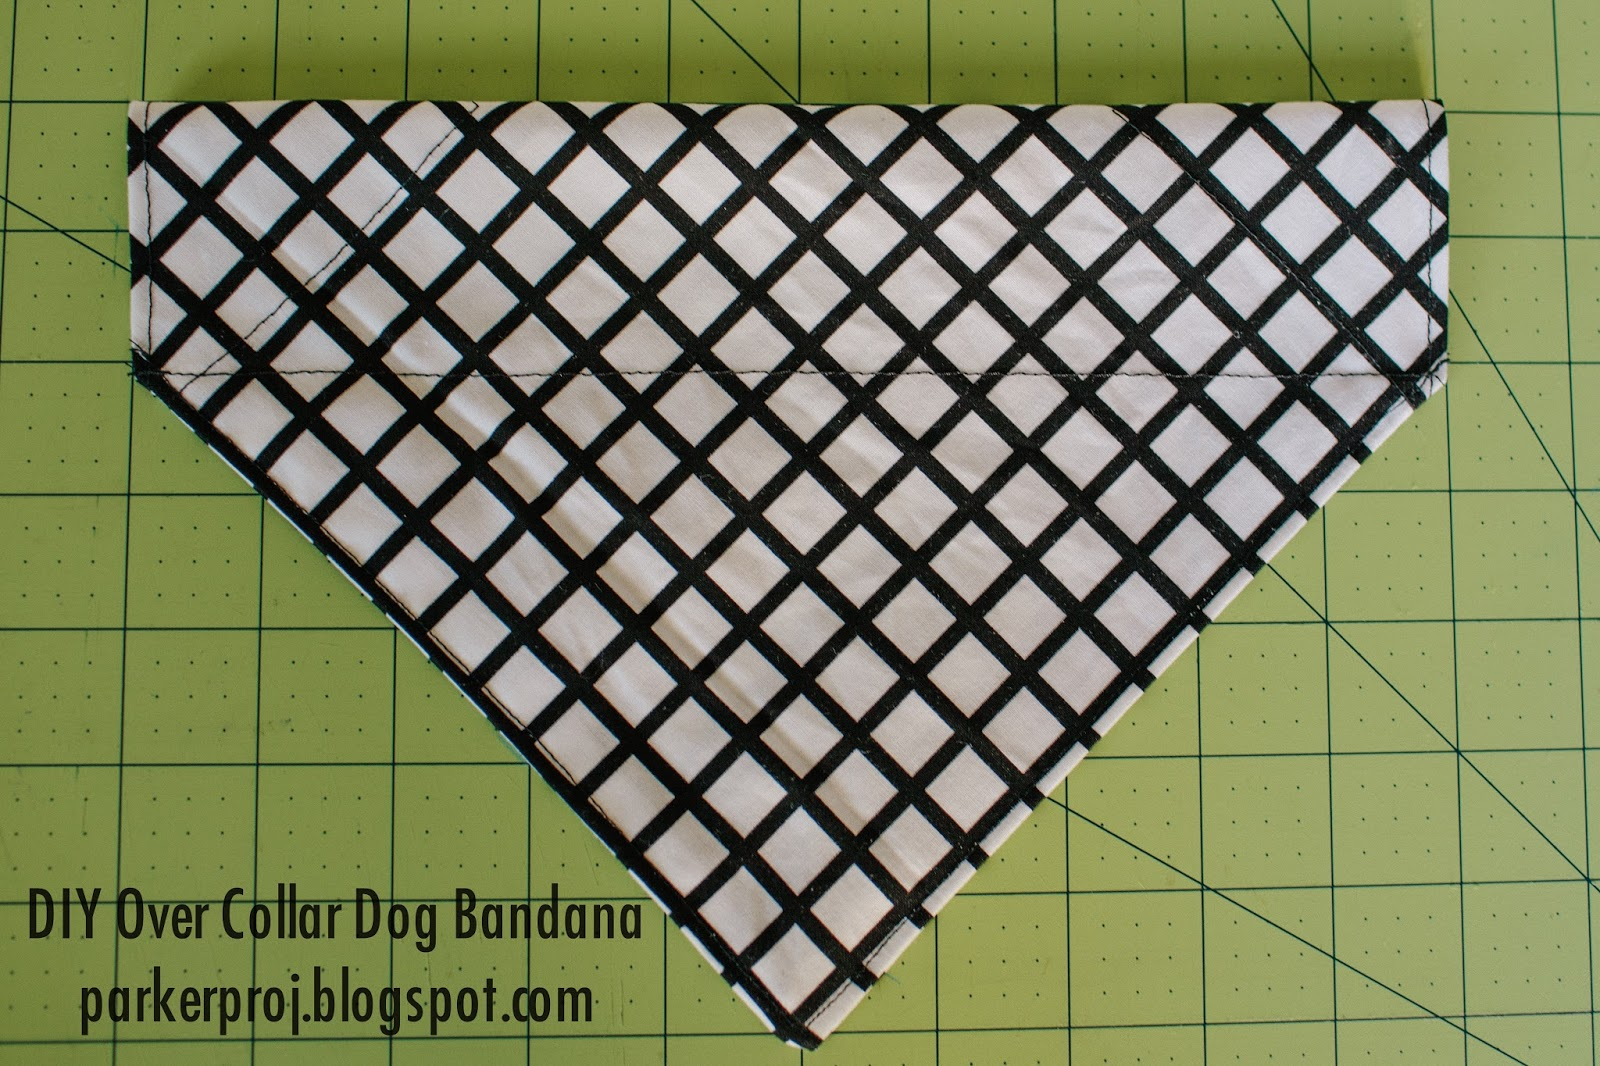 dog bandana template - the parker project over the collar dog bandana tutorial